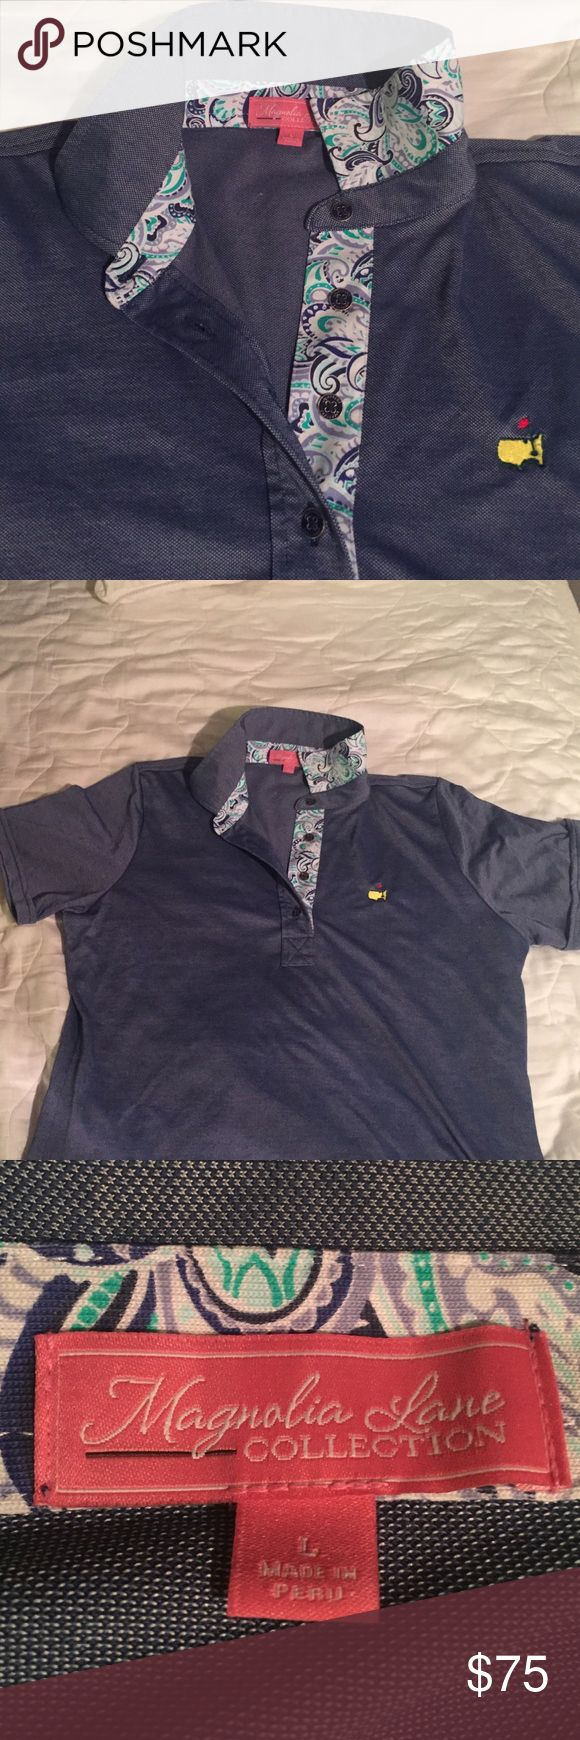 2016 woman's Masters golf shirt Denim blue color with paisley collar. Brand new without tags. Just does not fit. Size large Magnolia Tops Button Down Shirts